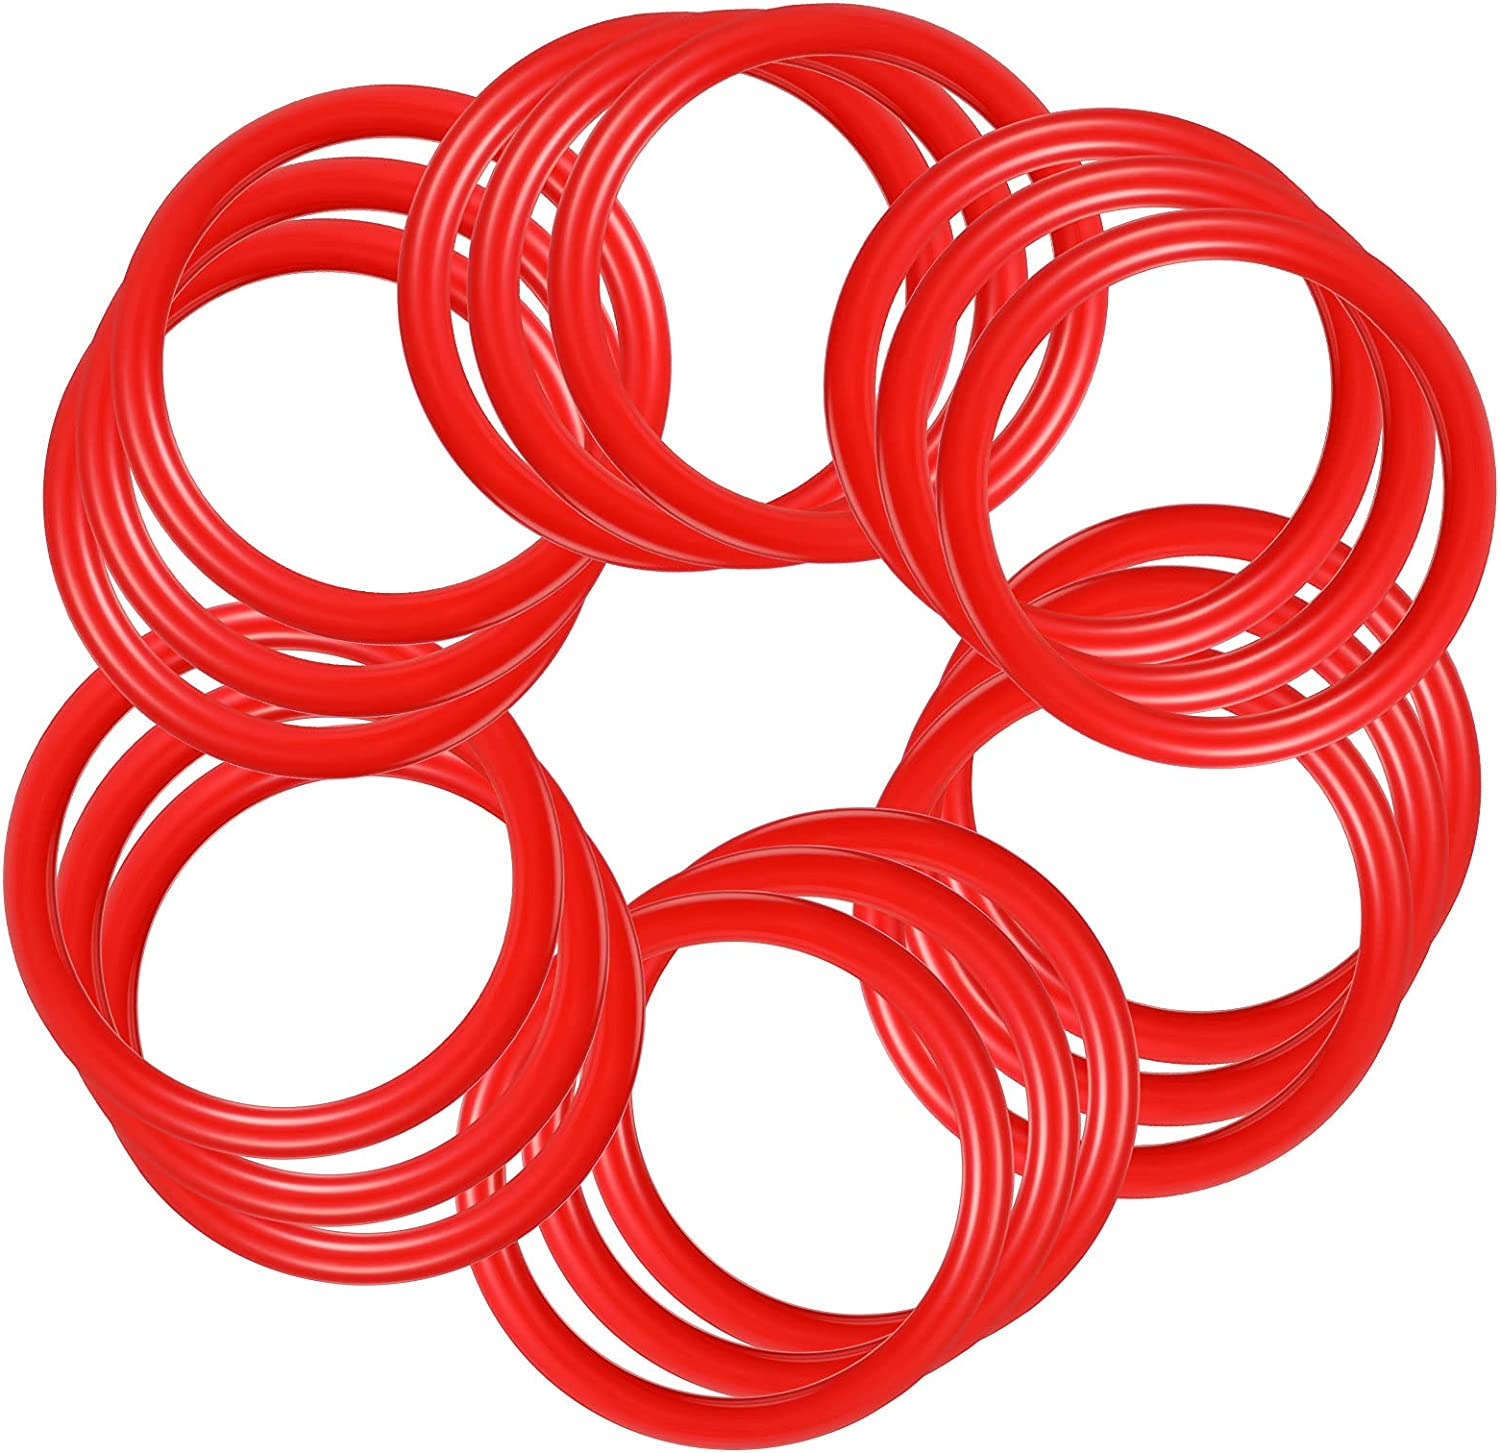 Meooeck 48 Pieces Plastic Ring Toss Japan's largest assortment R Fort Worth Mall toss Inch Toy 2.9 Red